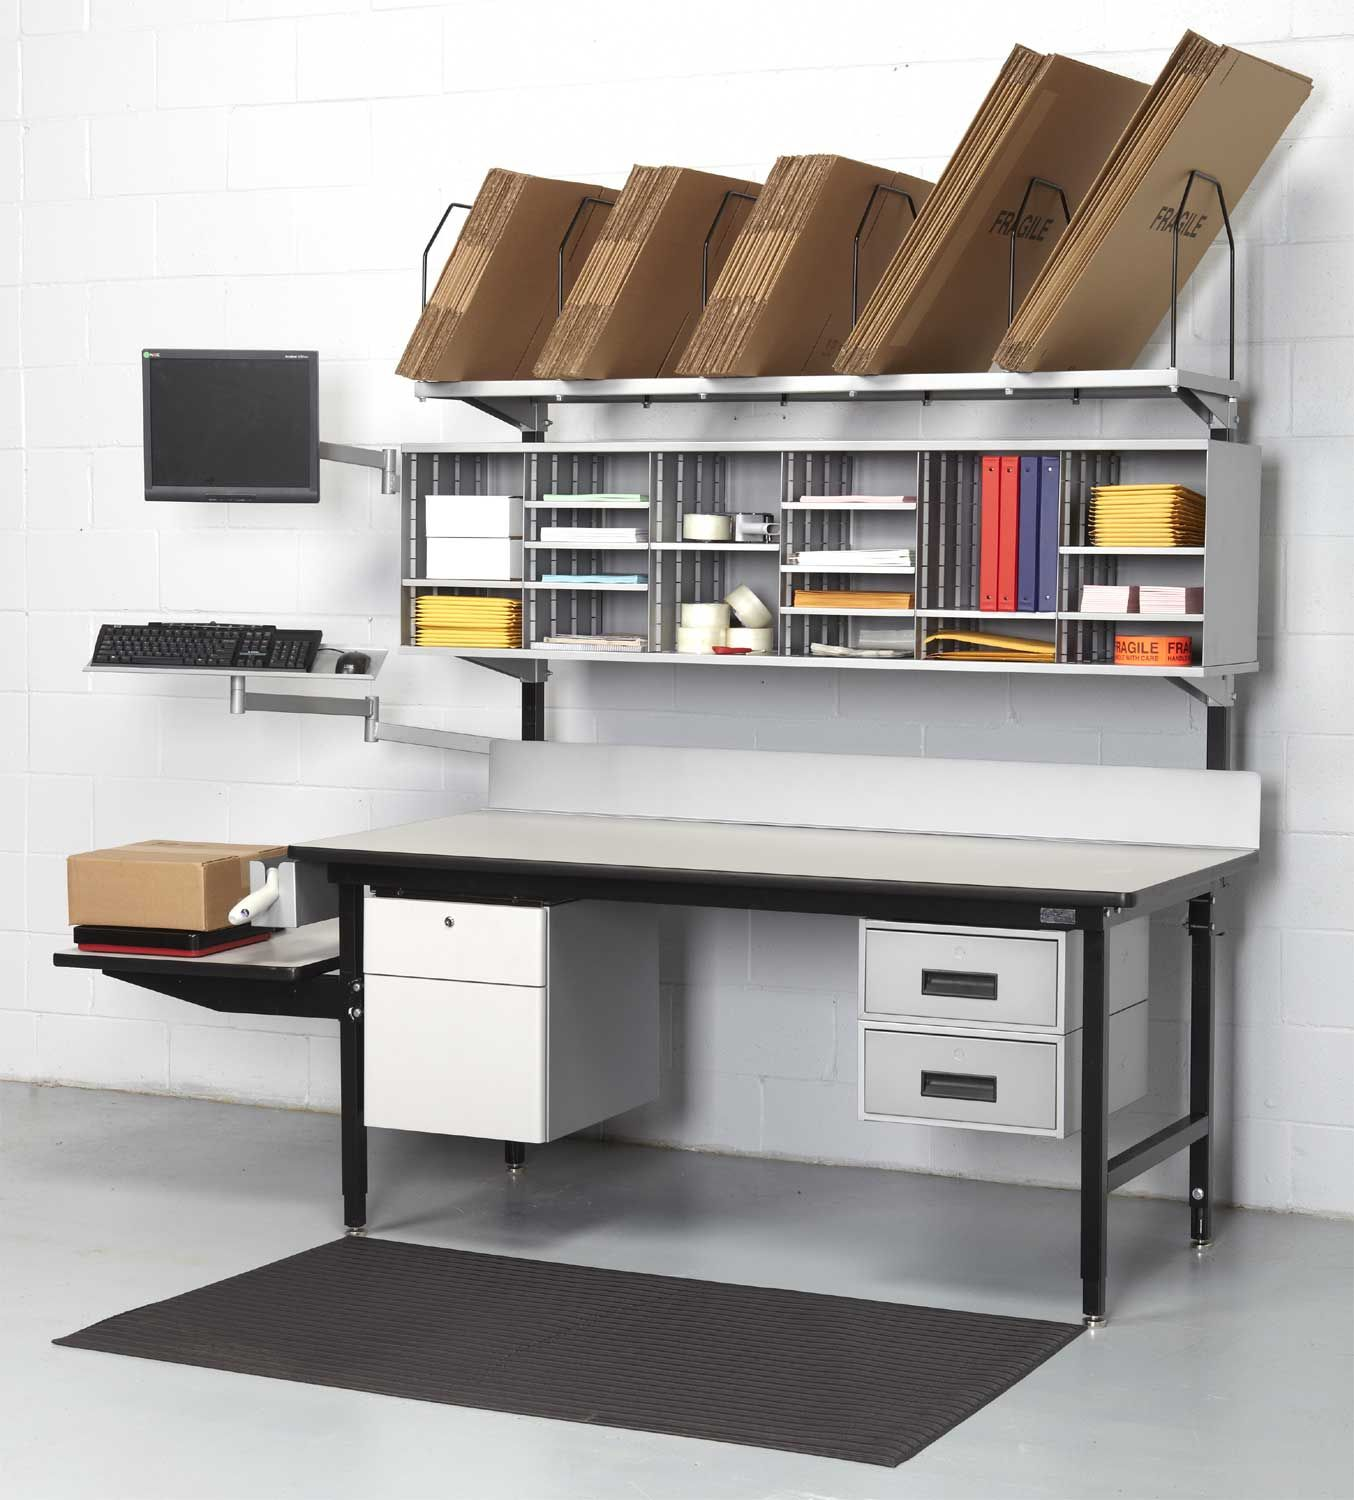 I like this packing station for the divided wall unit to store a variety of bags and boxes.